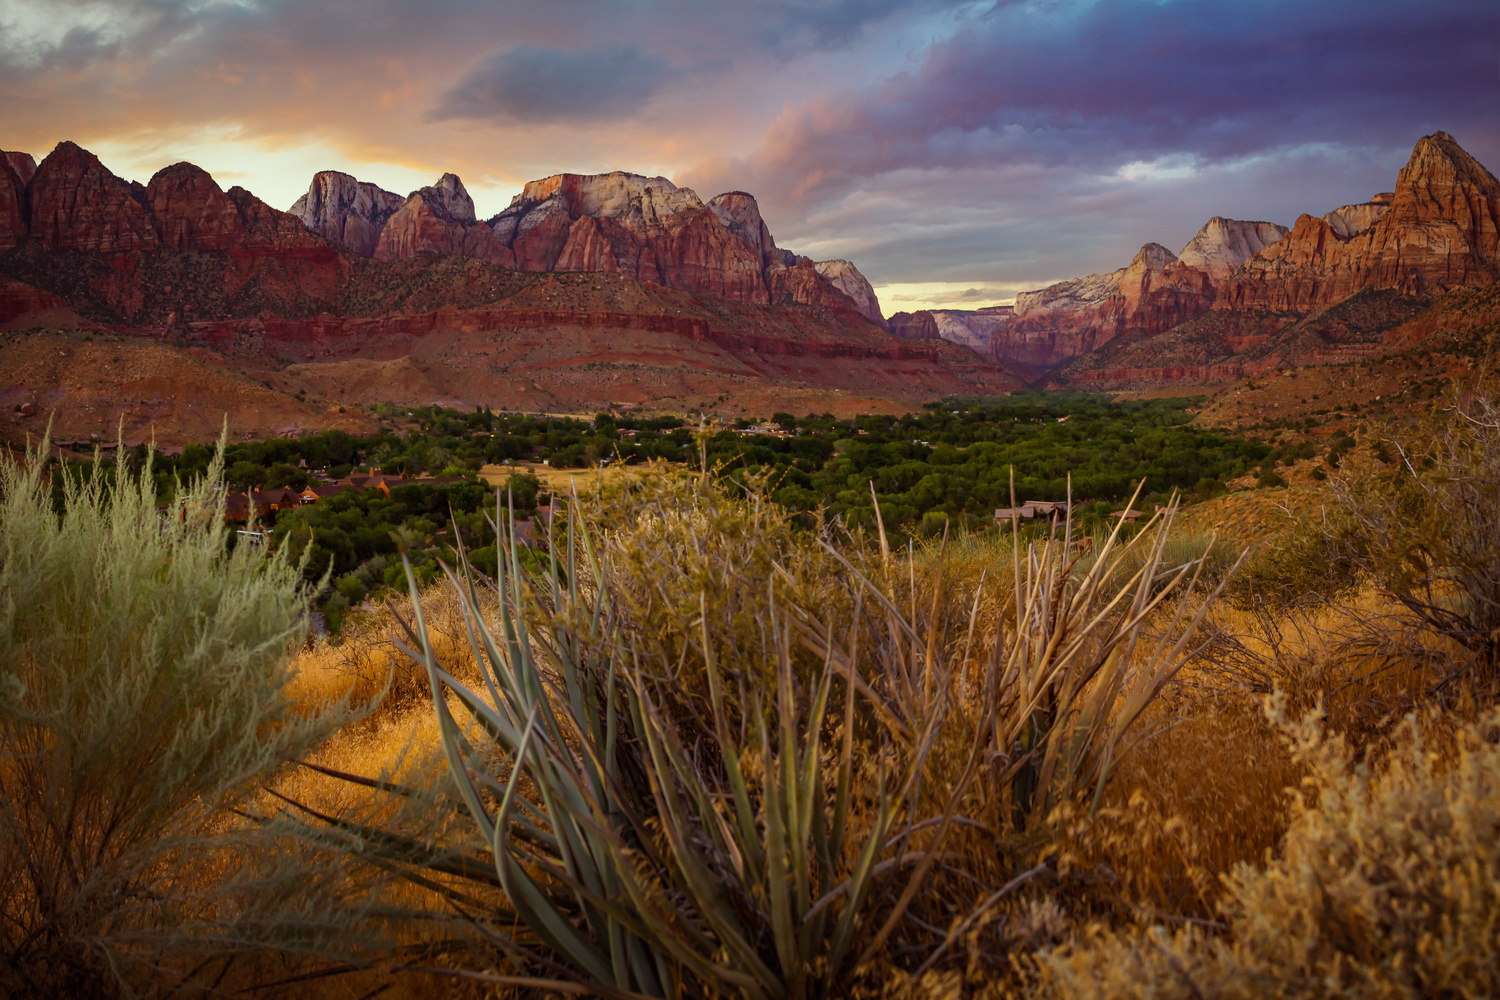 sunset image of zion national park in southern utah